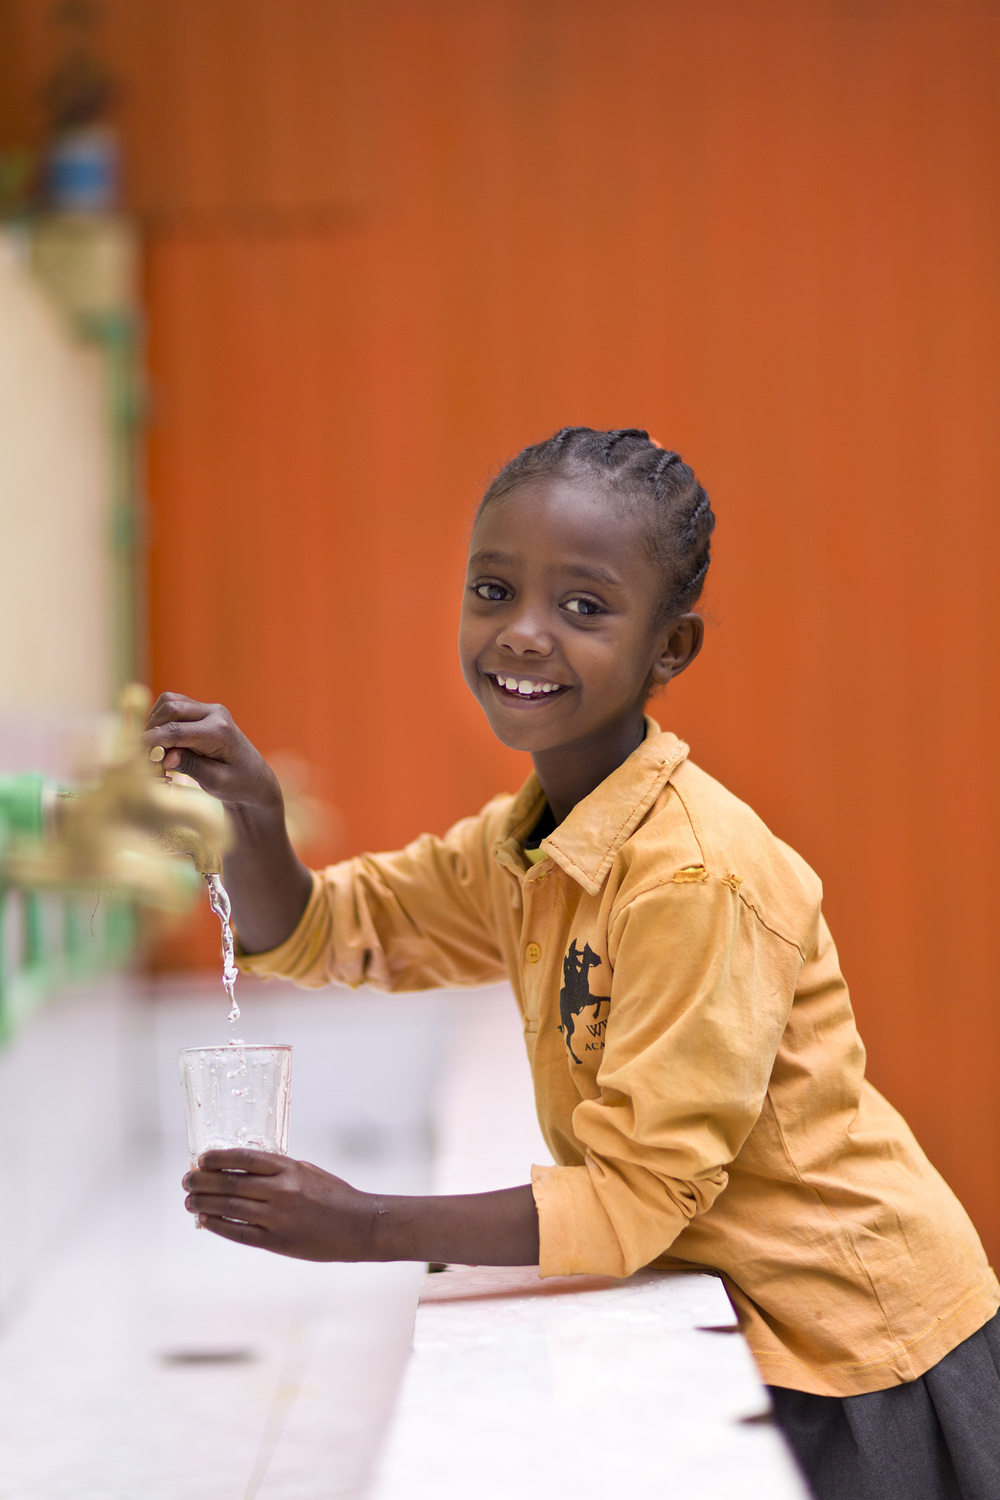 Children in orphanages drinking clean water, Splash